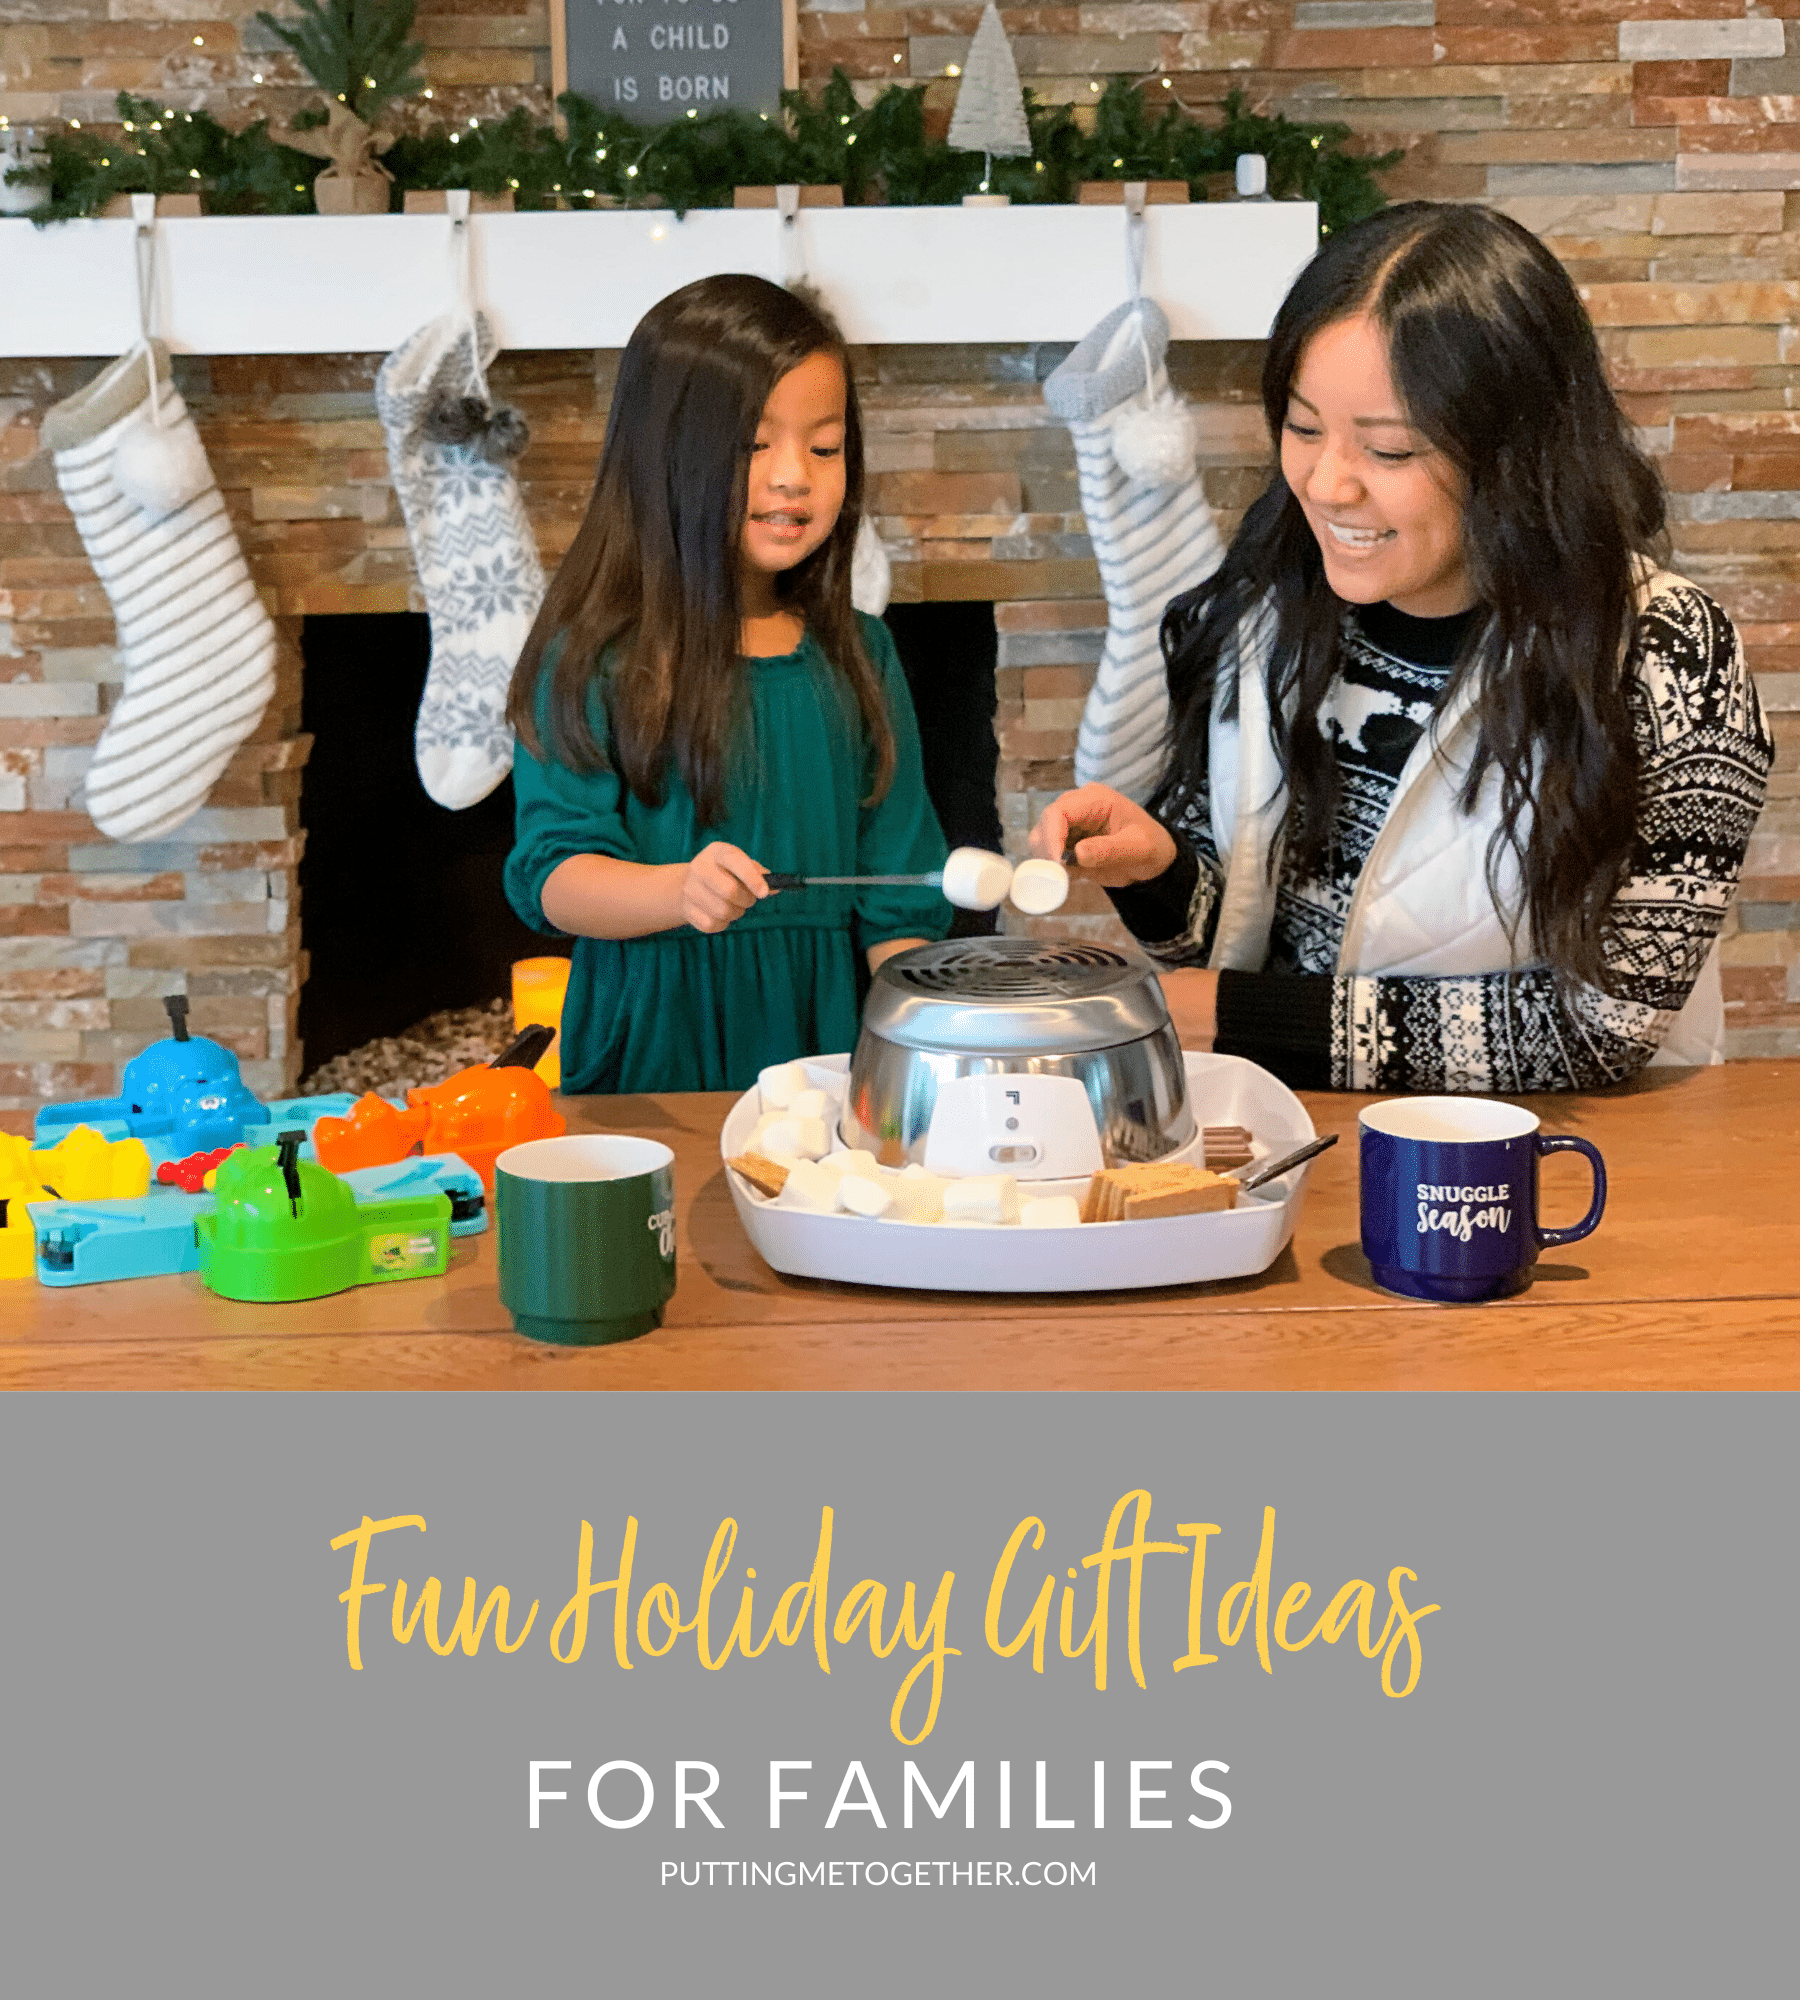 Family Gift Ideas and Holiday Outfits for Moms